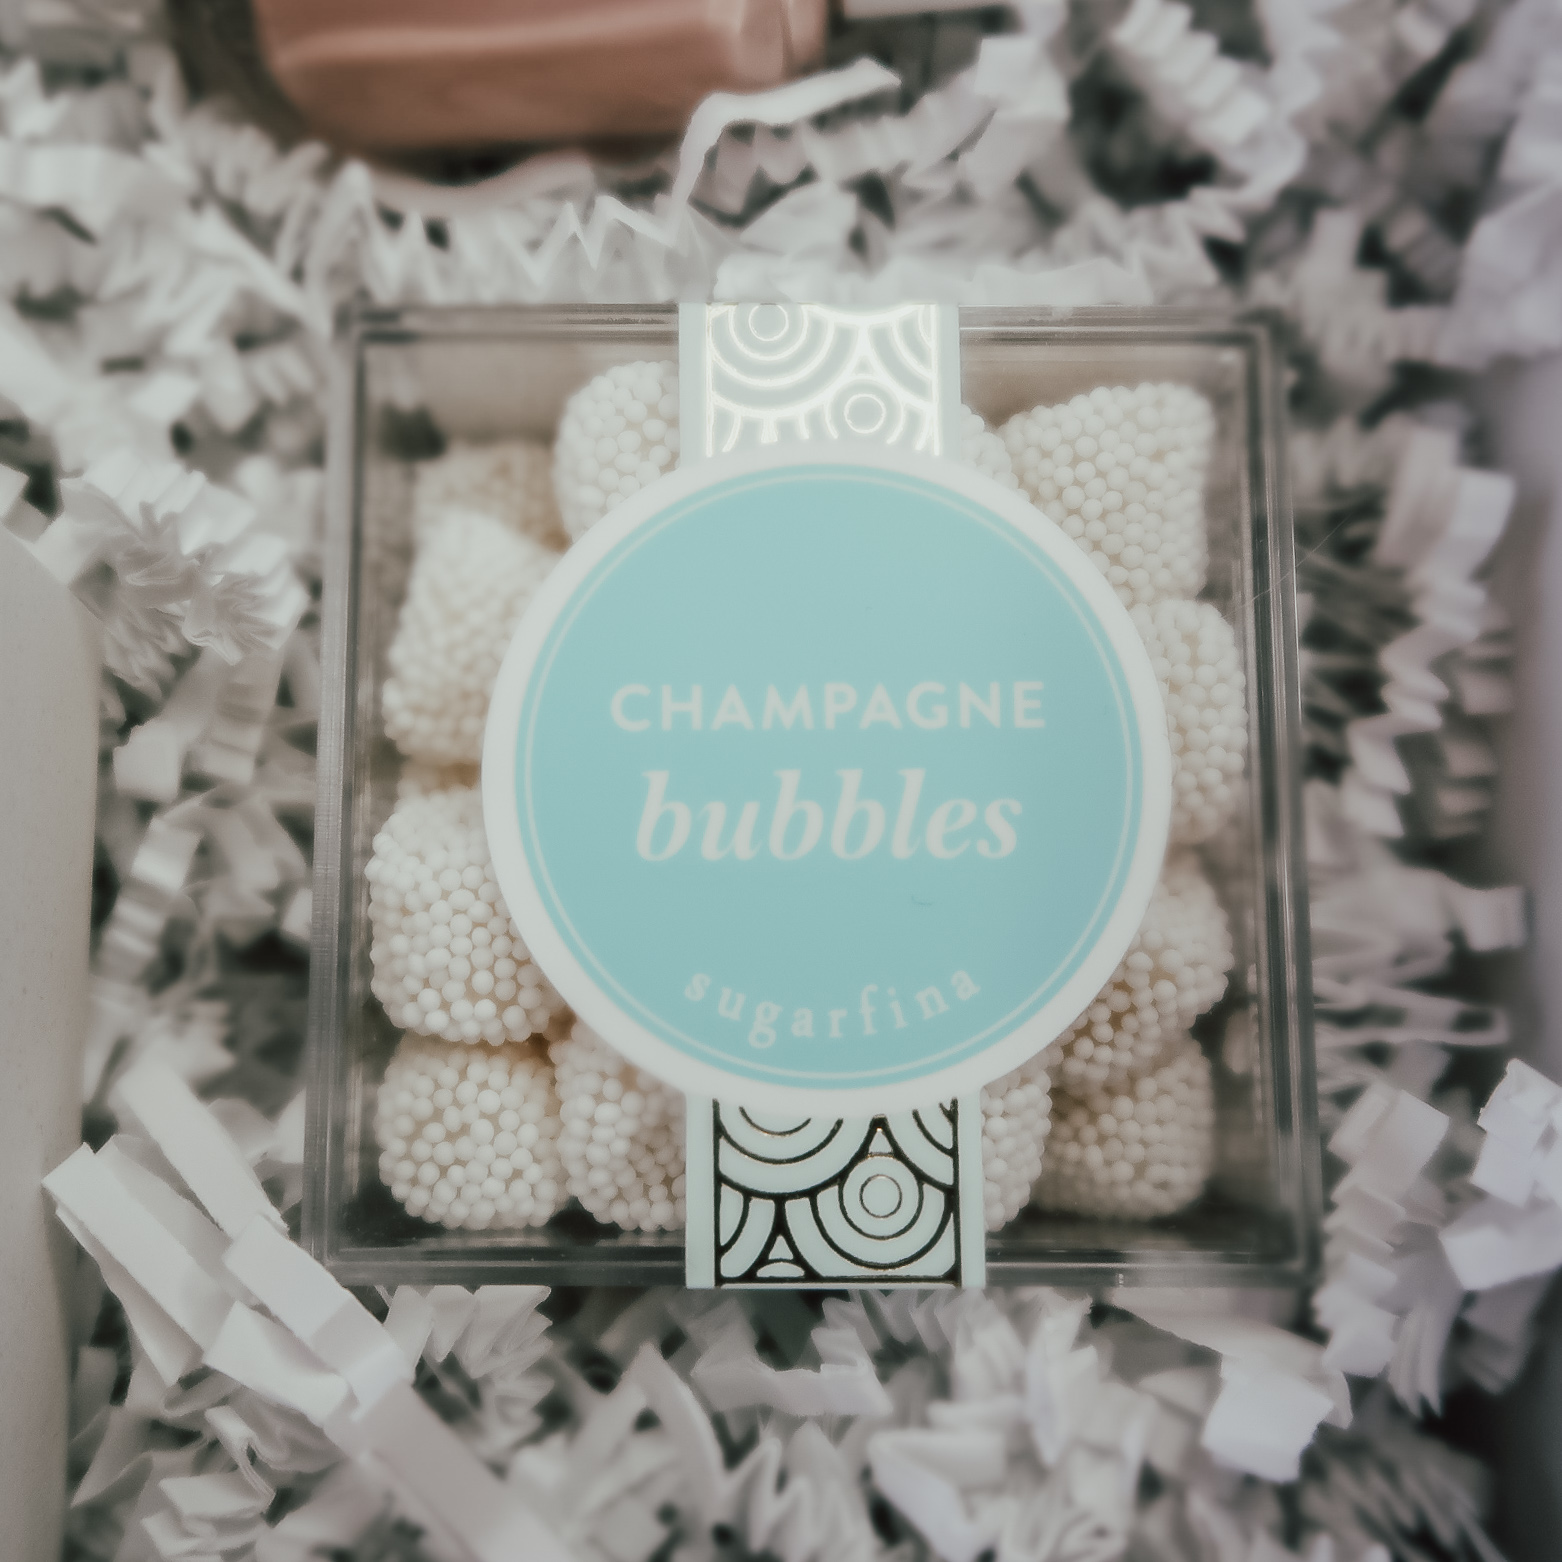 Bridesmaid-Proposal-How-to-Ask-Your-Bridesmaids-Wedding-6.jpg